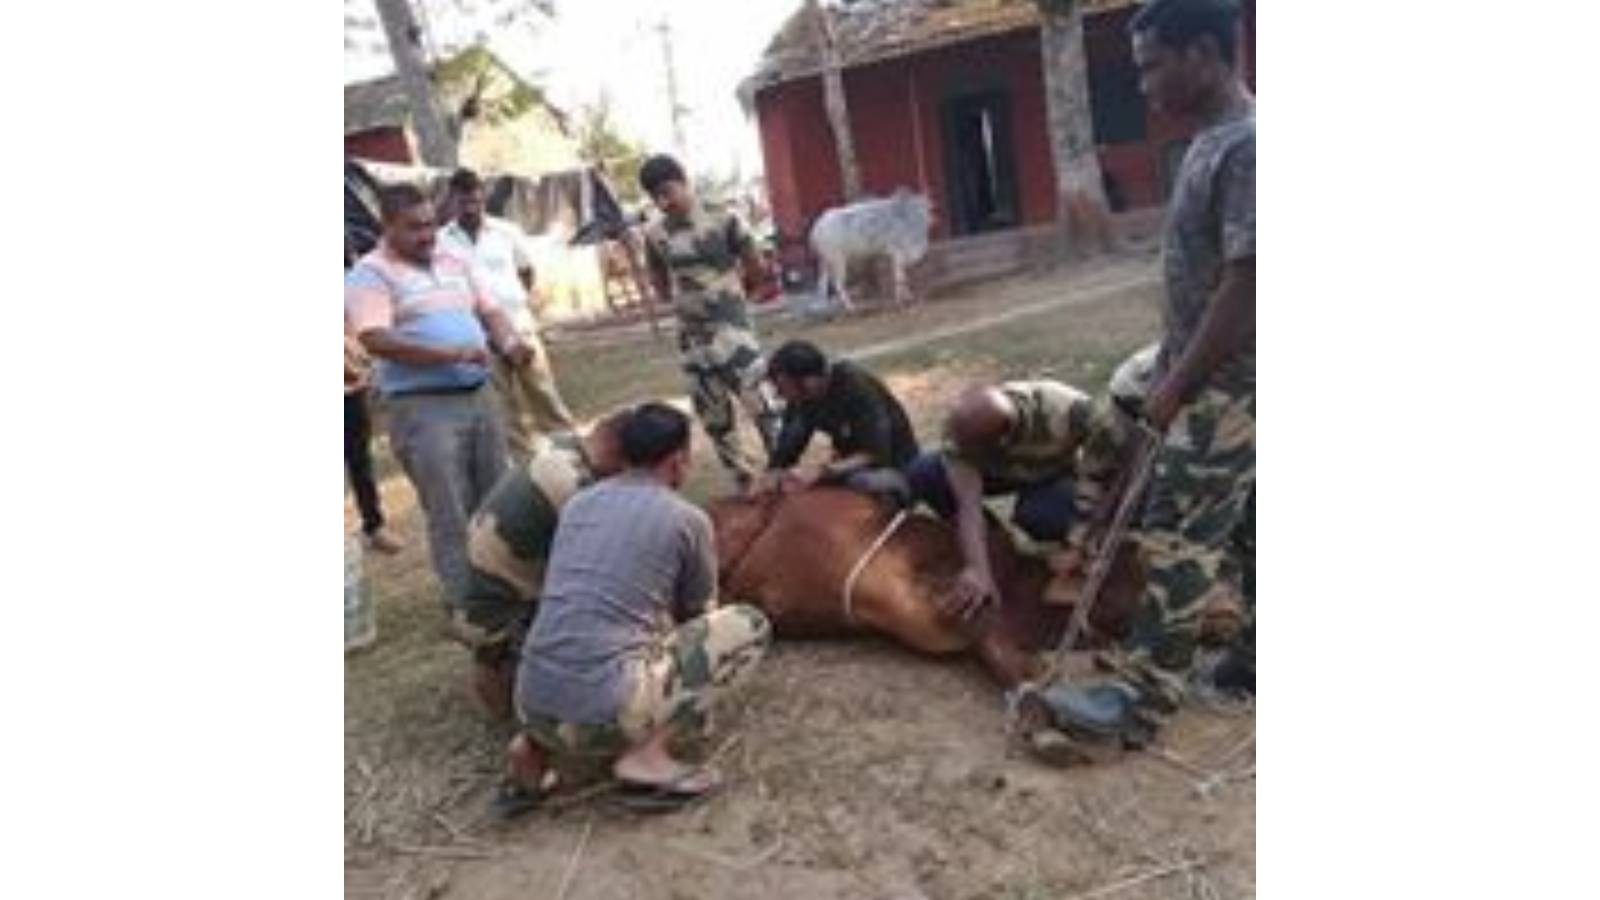 rescue with the help of BSF